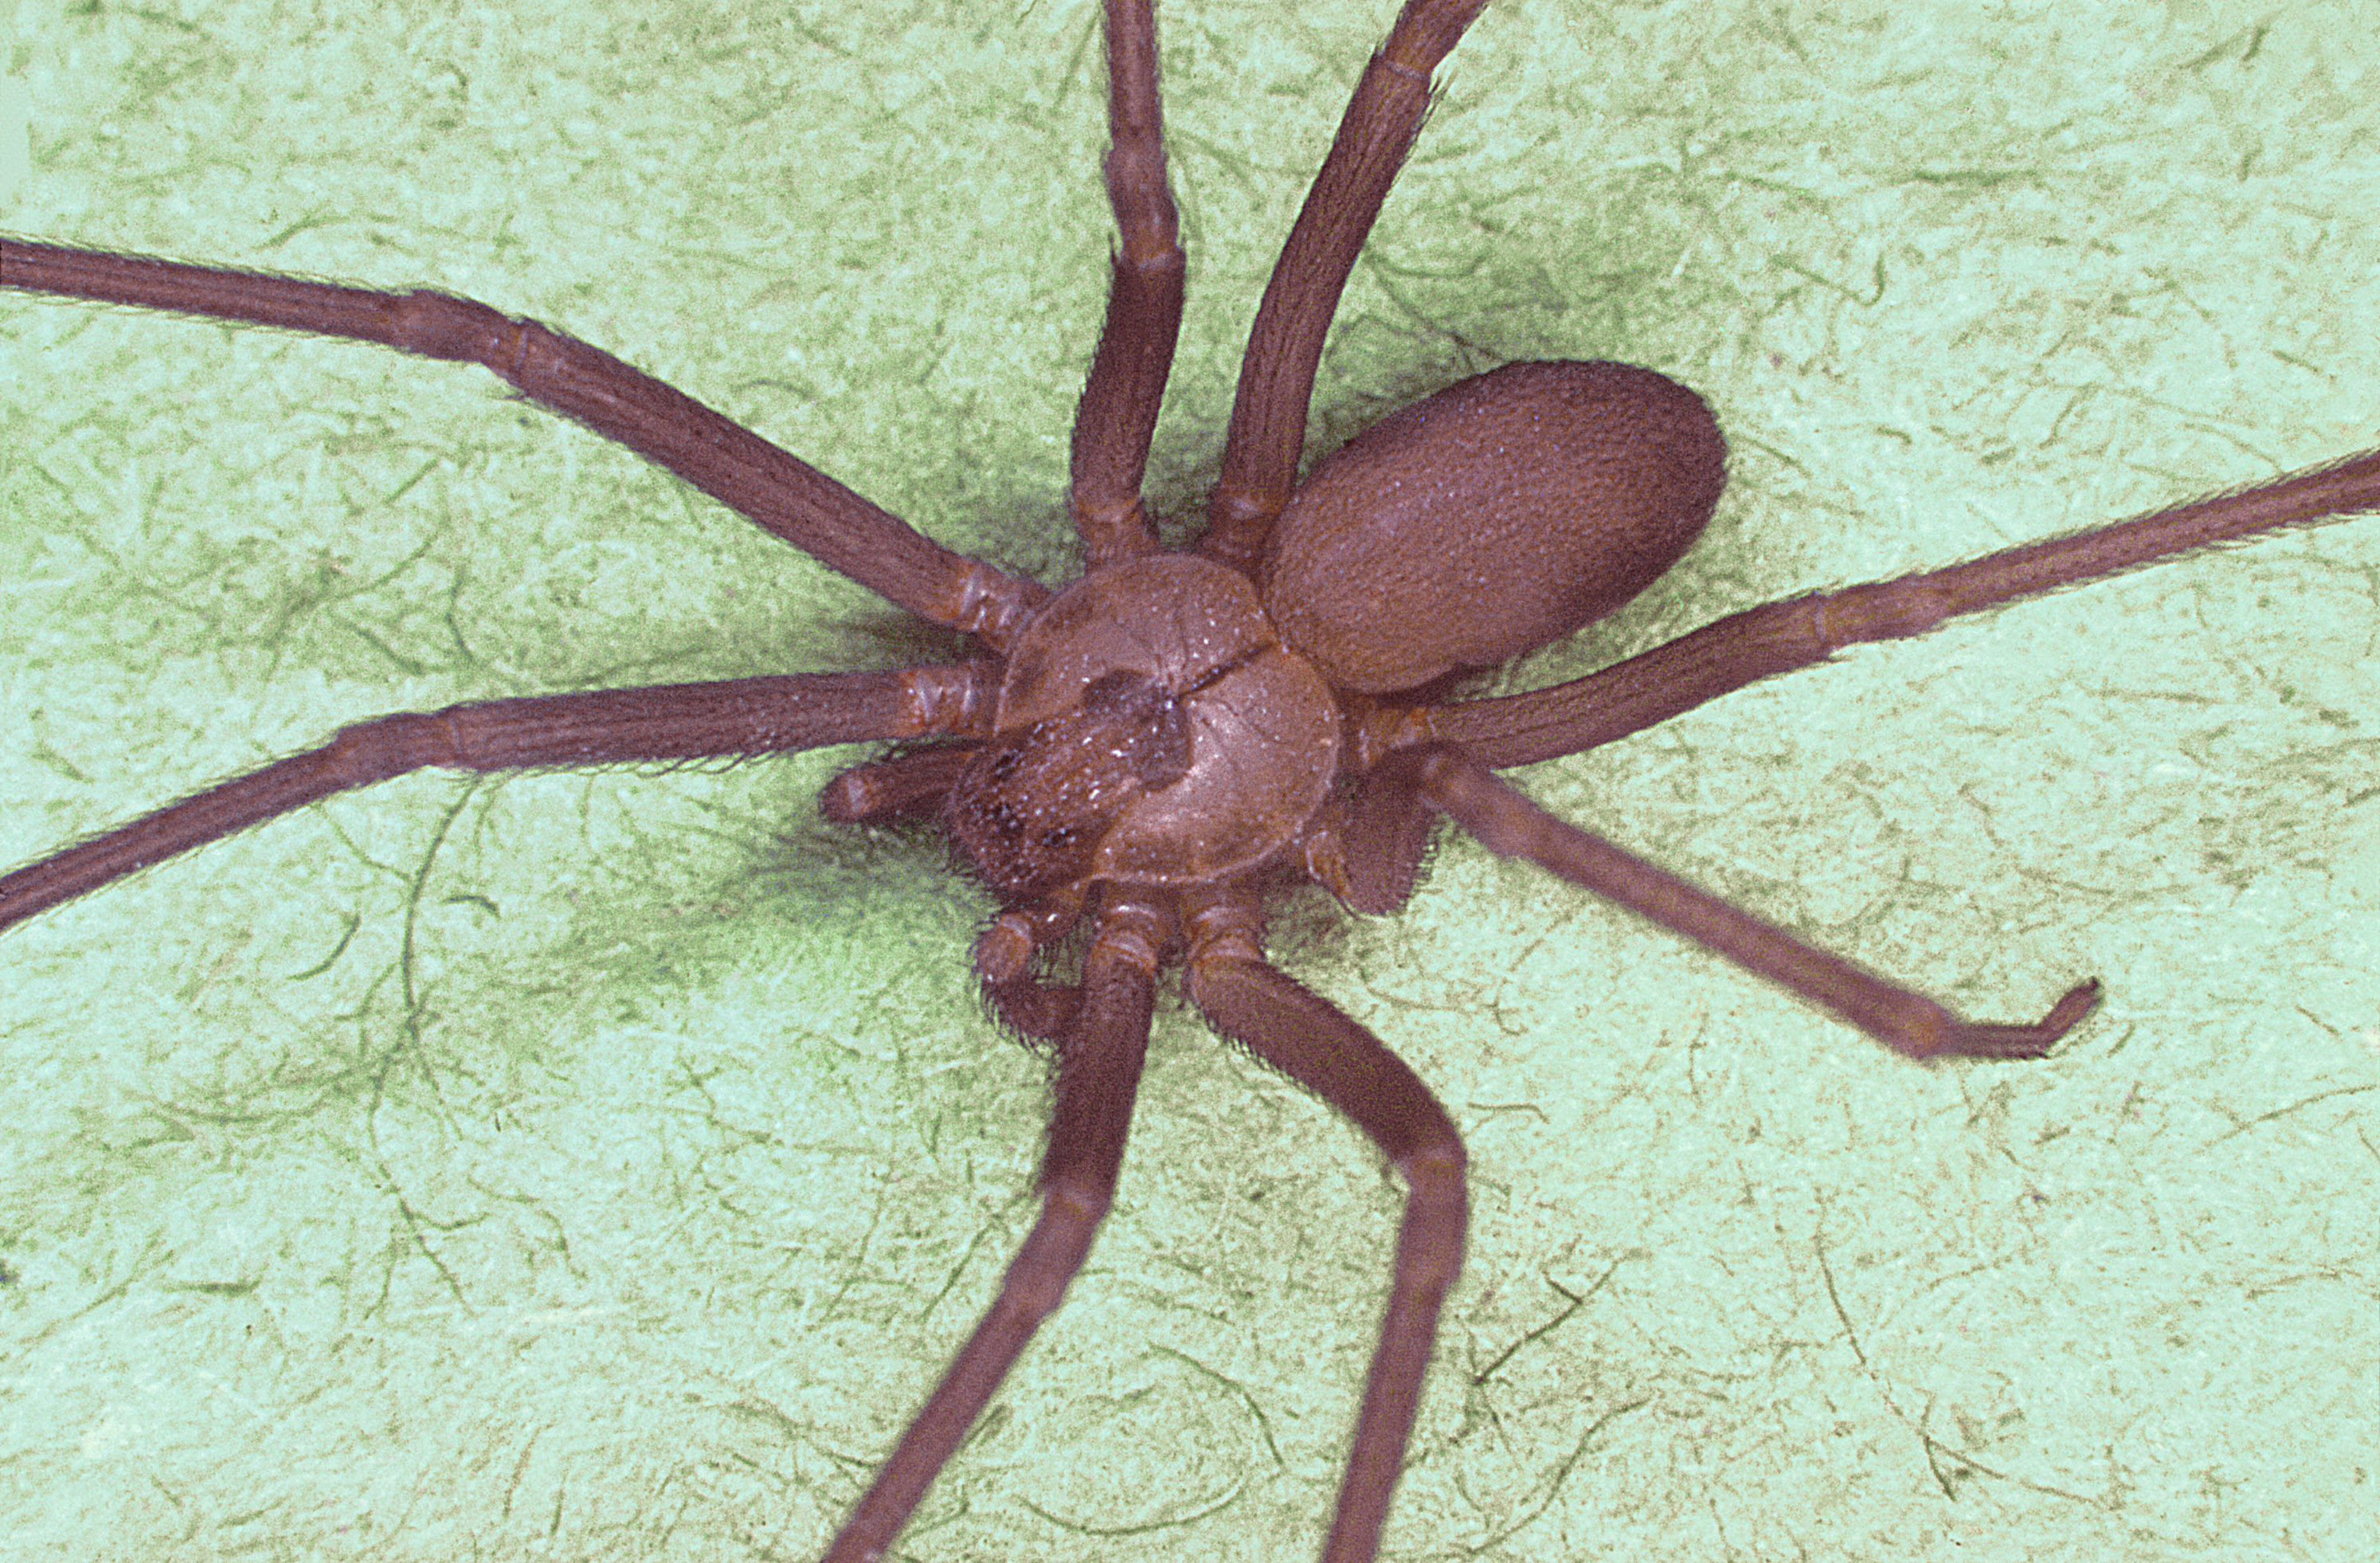 Can Brown Recluse Spiders Kill Cats